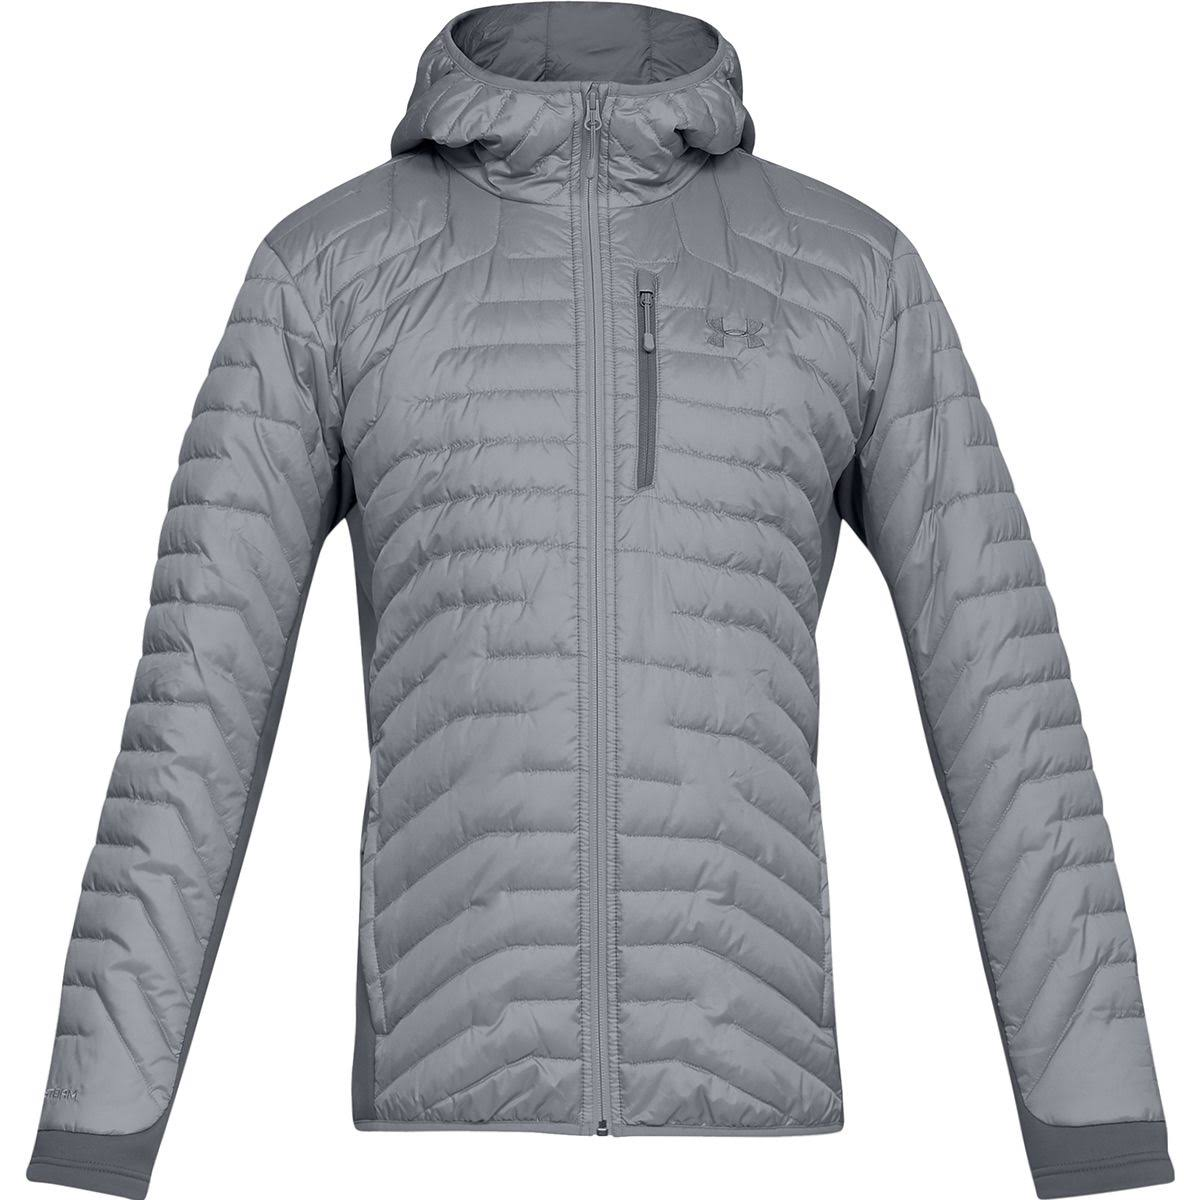 Herren Jacket Hybrid Armour Größe Reactor Coldgear L Under 1pqTBZwWq